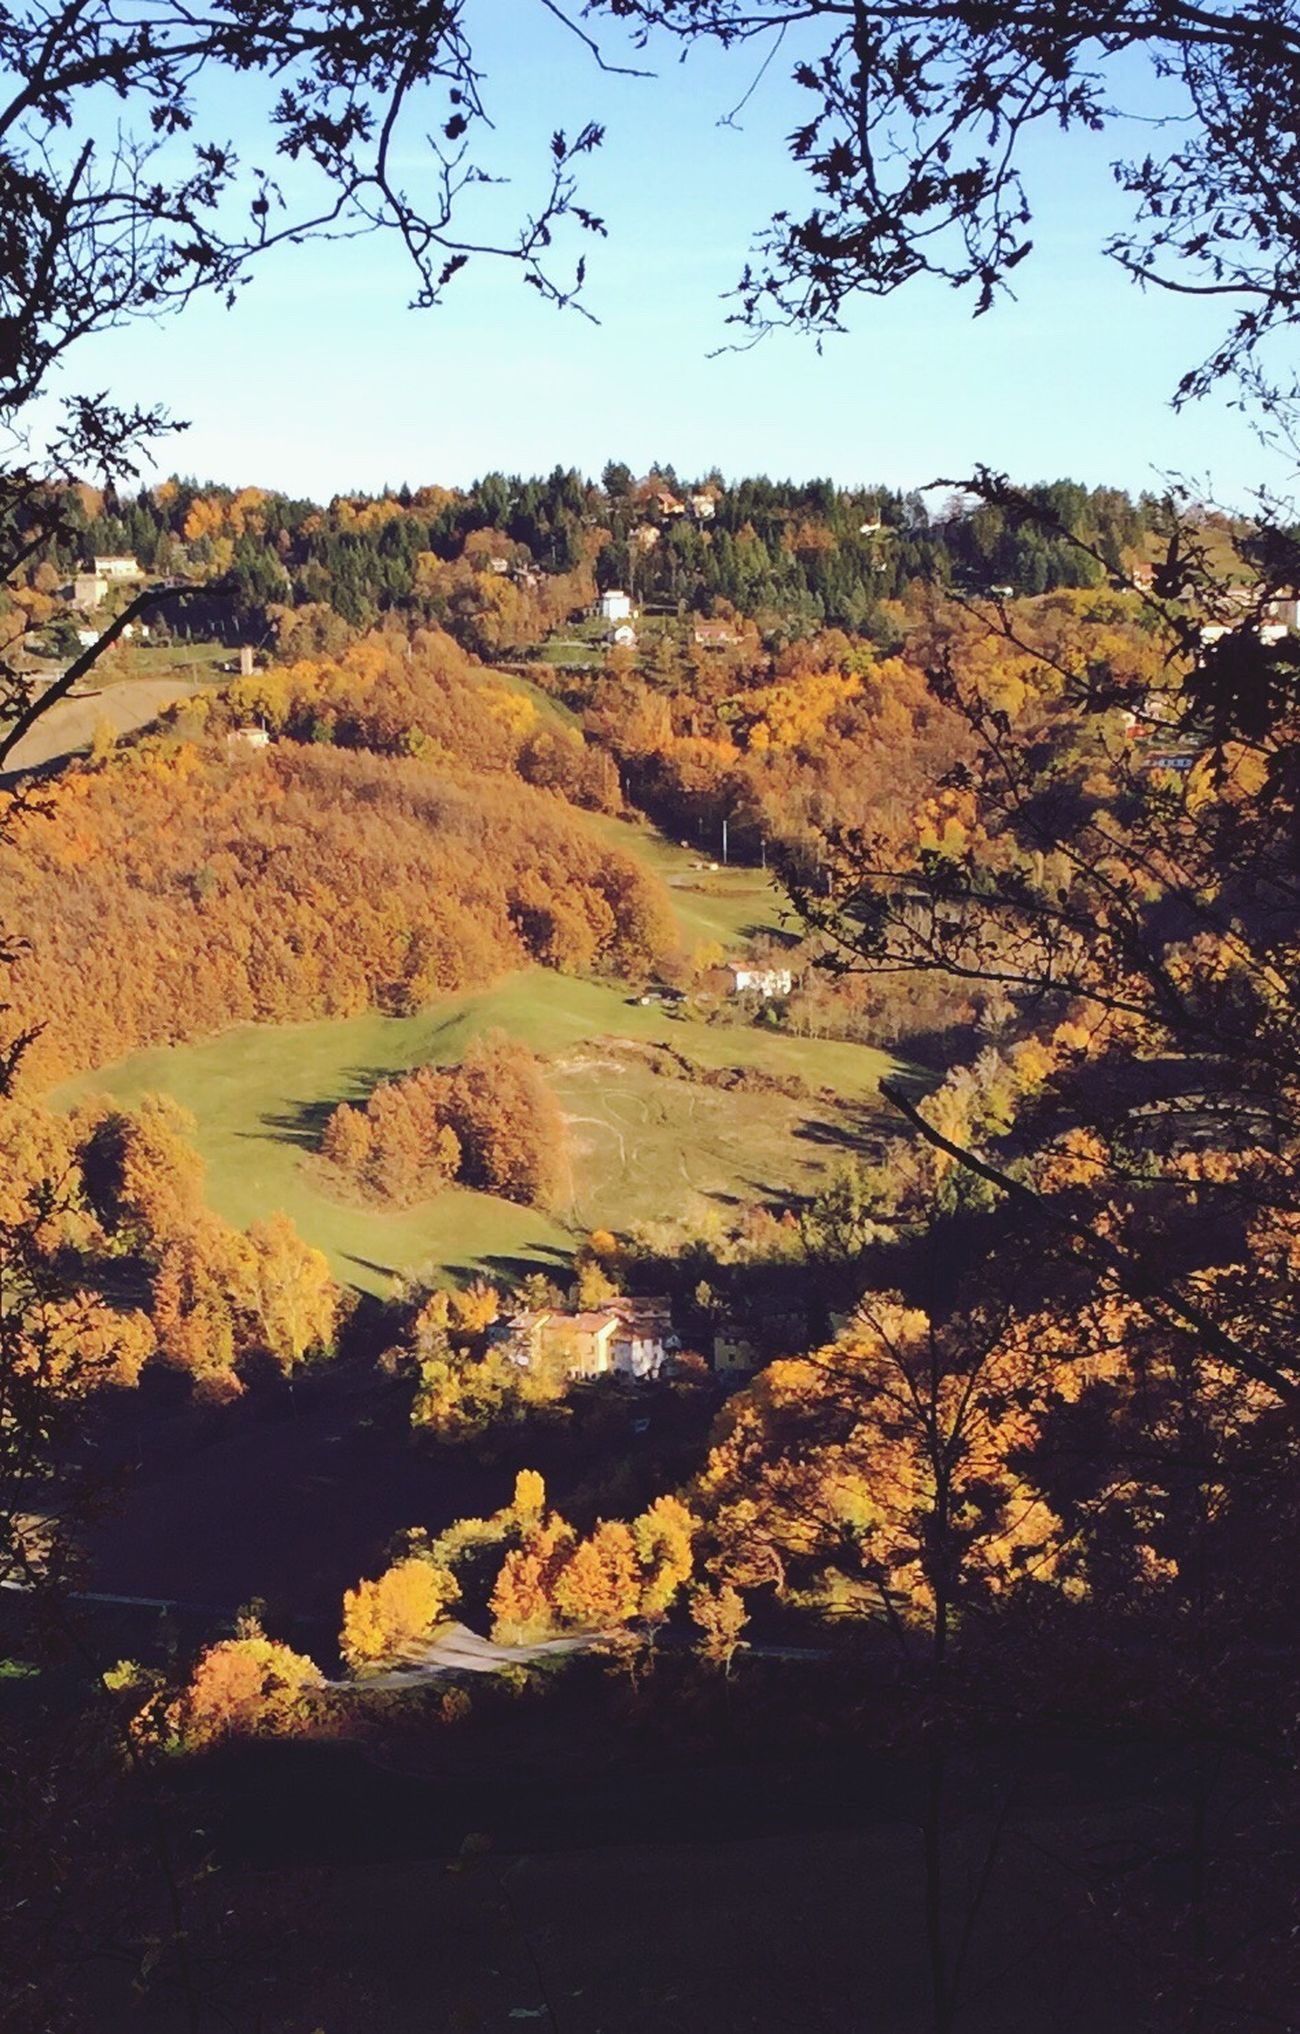 Valli in autunno